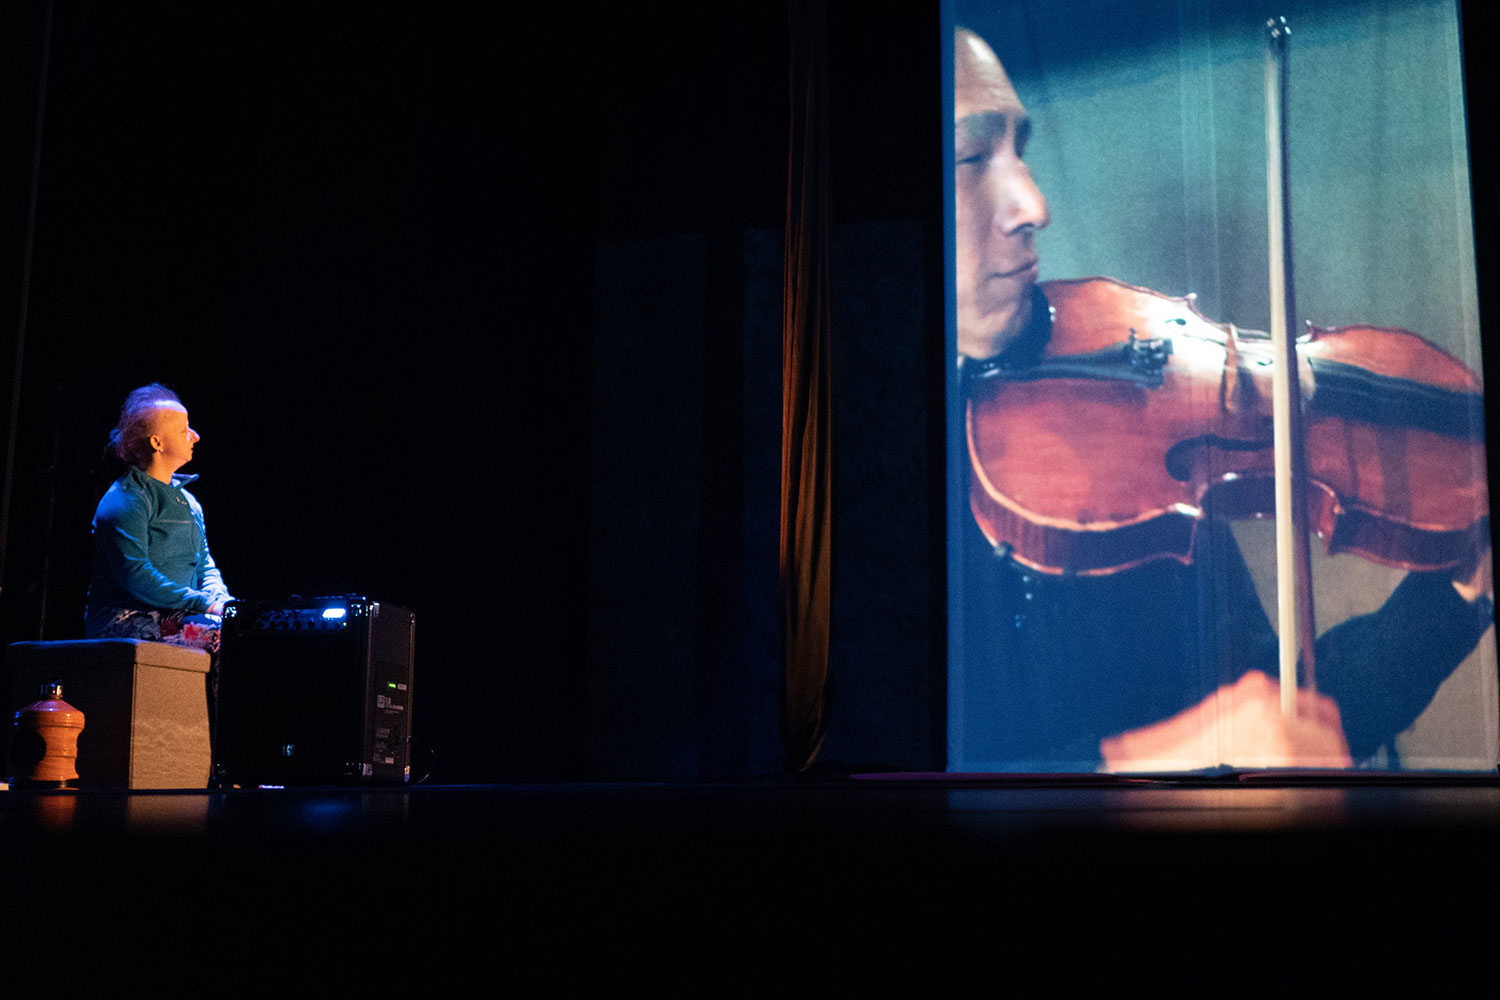 A white woman sits downstage right watching a 14 ft projection of an East Asian man playing the viola.